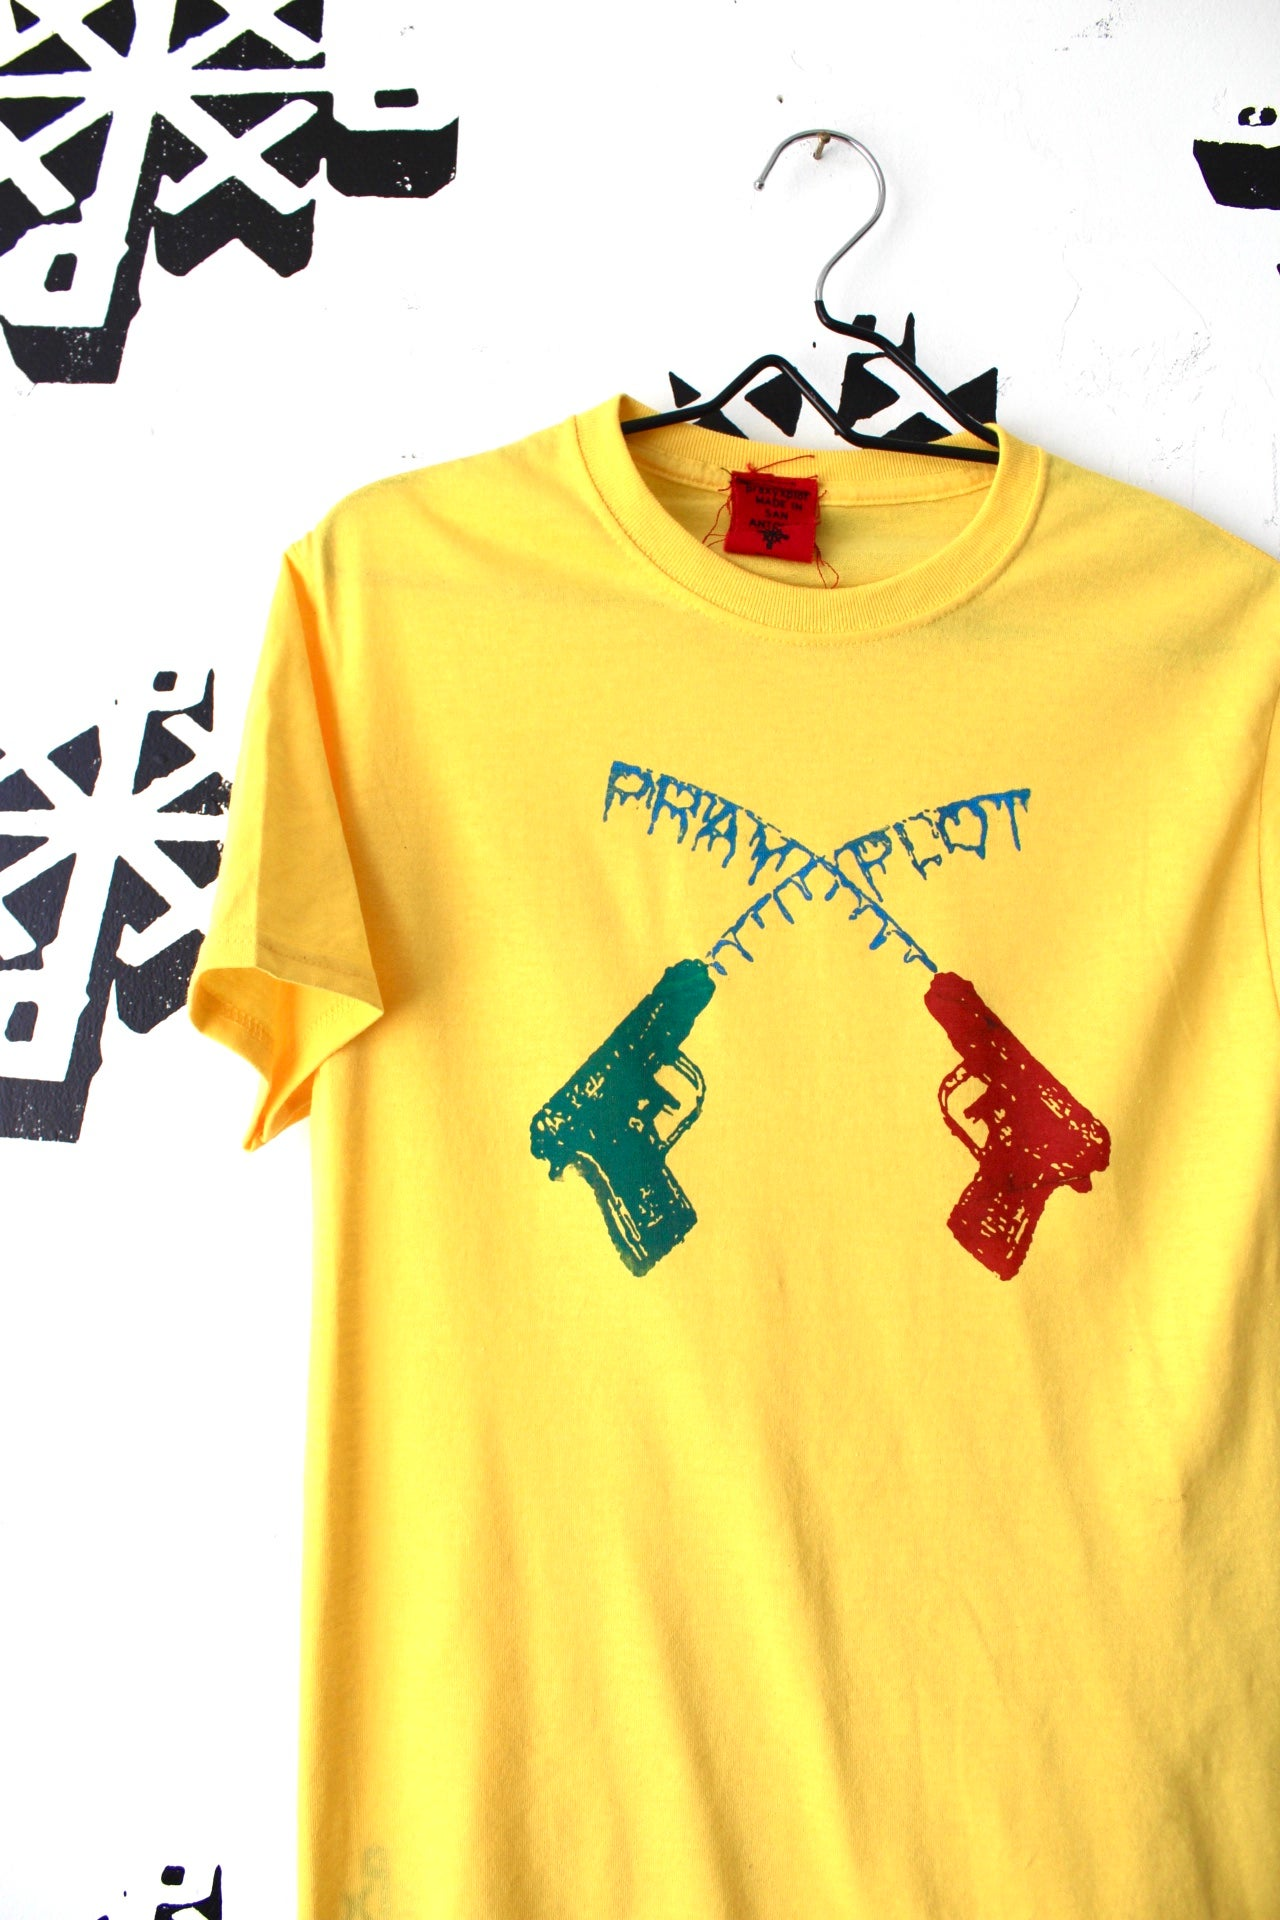 Image of come get wet tee in yellow